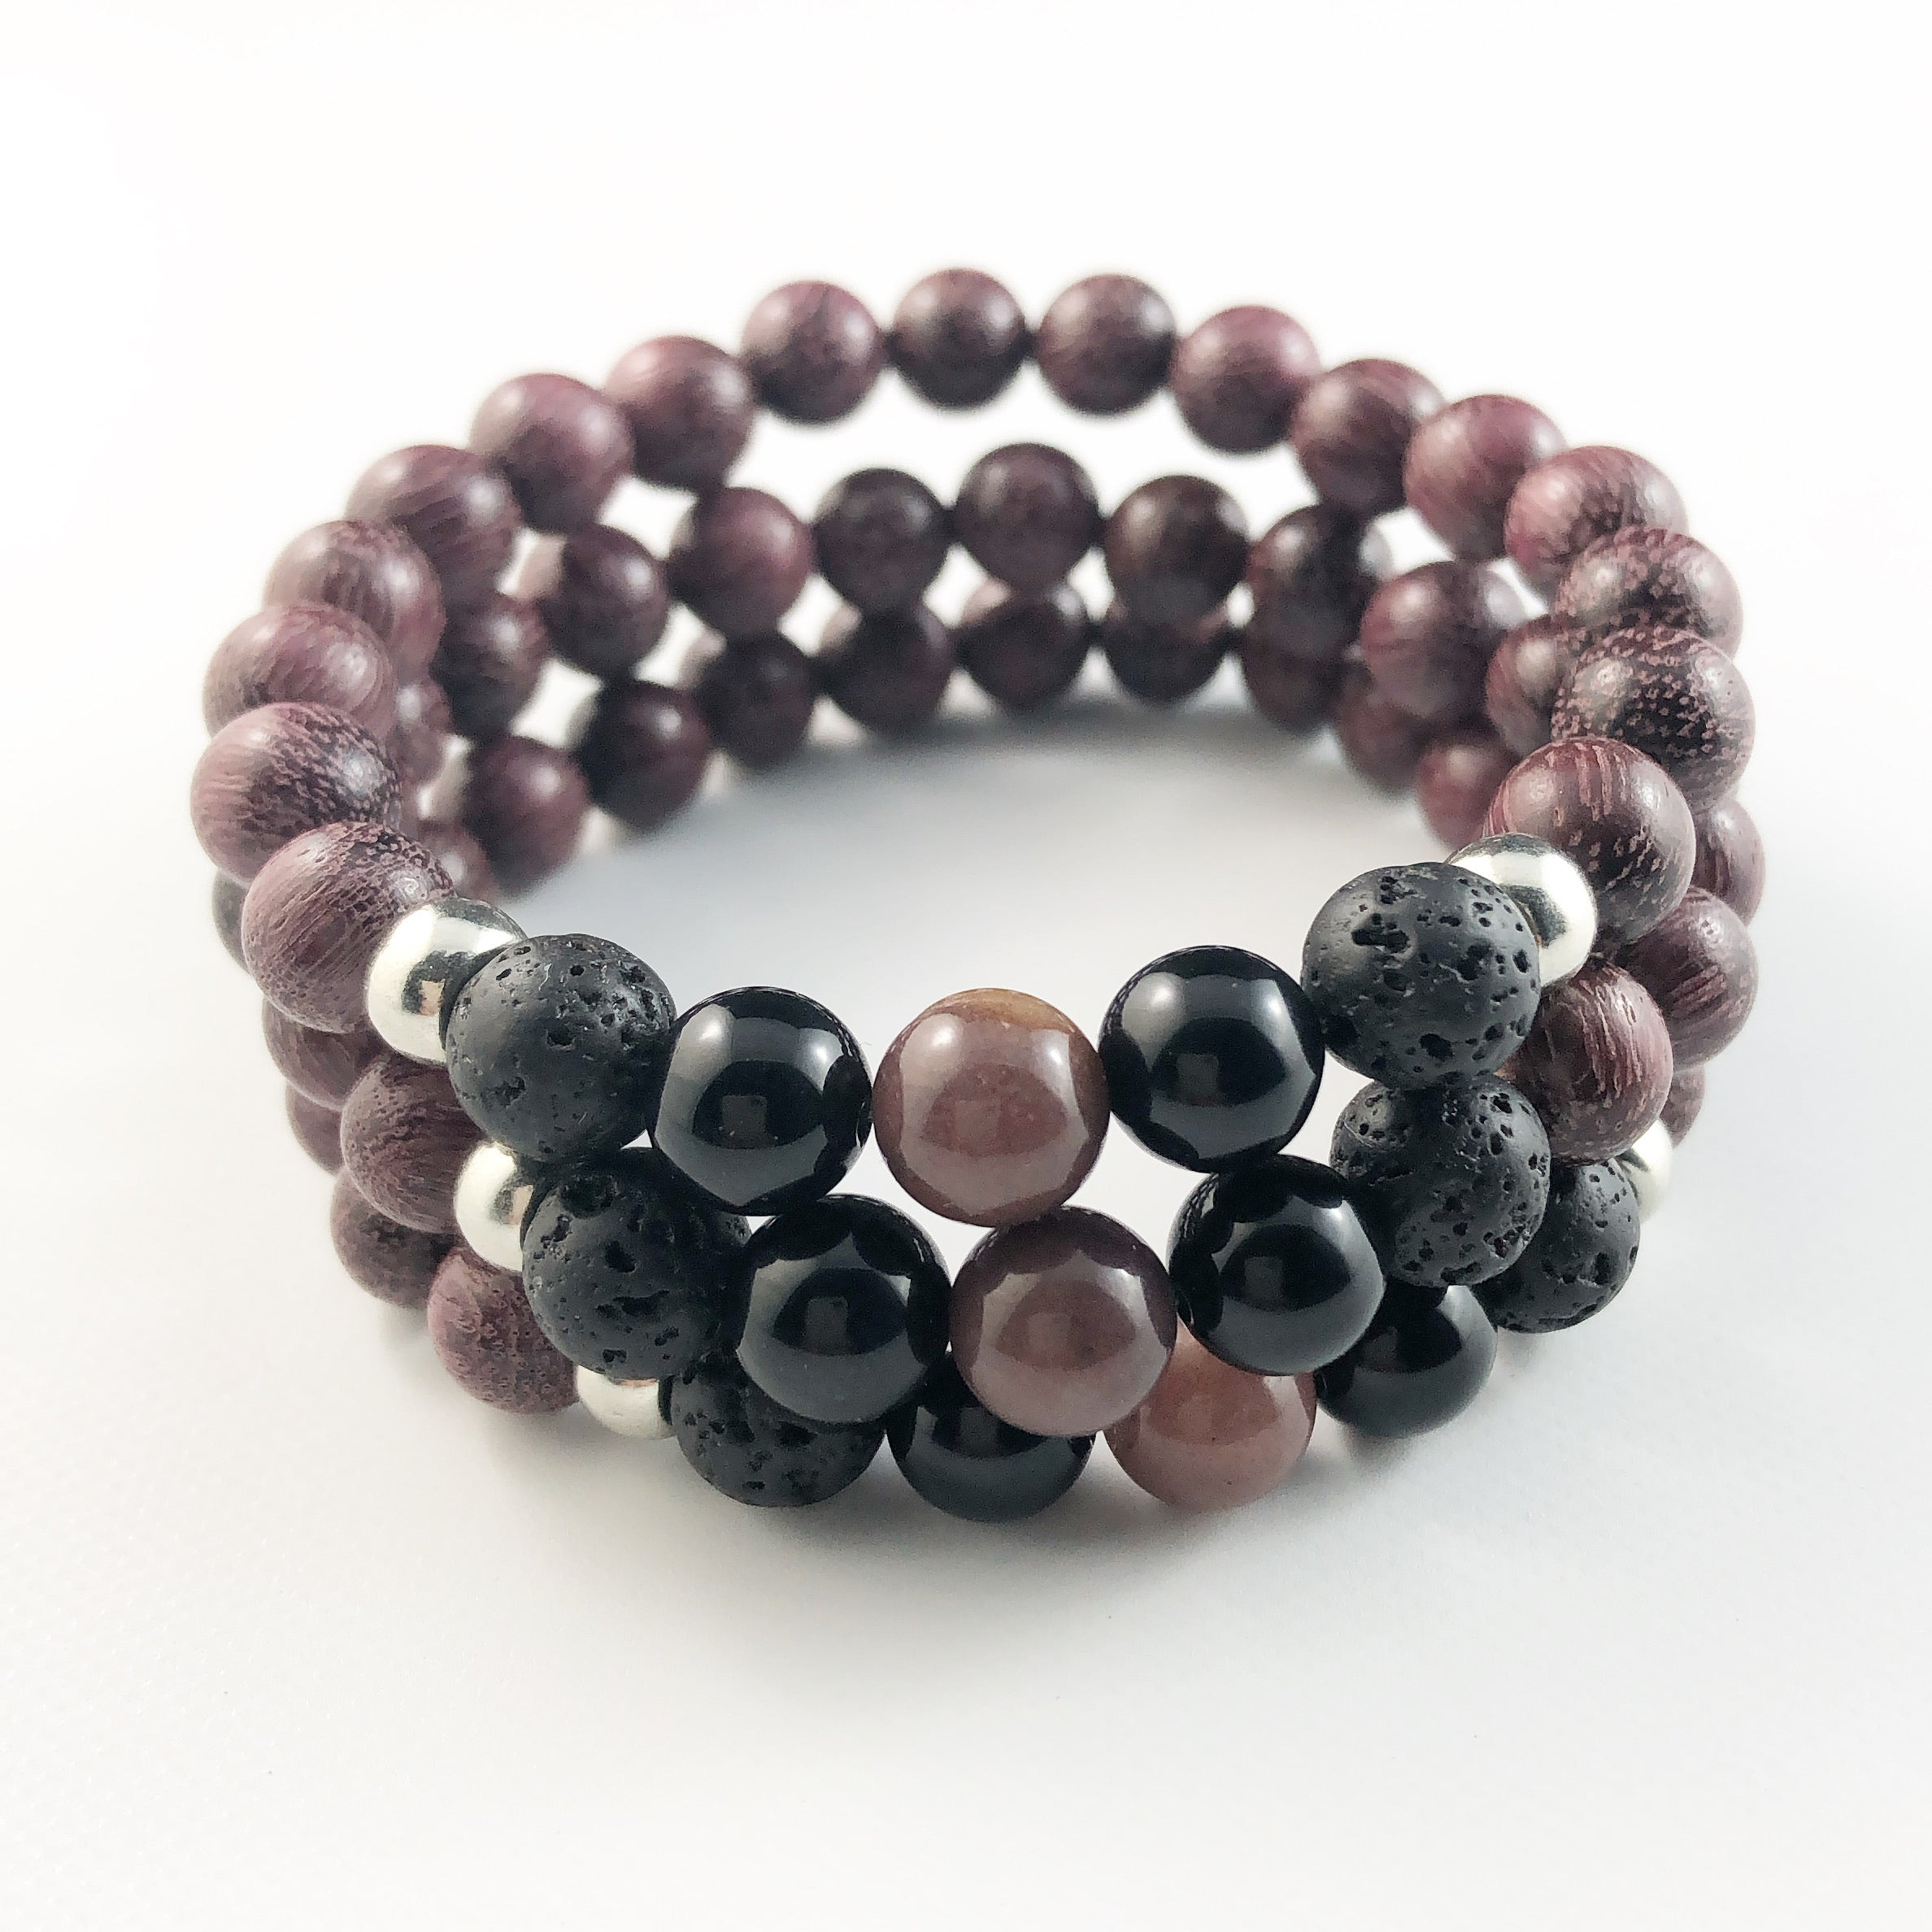 Plum Sandalwood with Silver Accents Bracelet